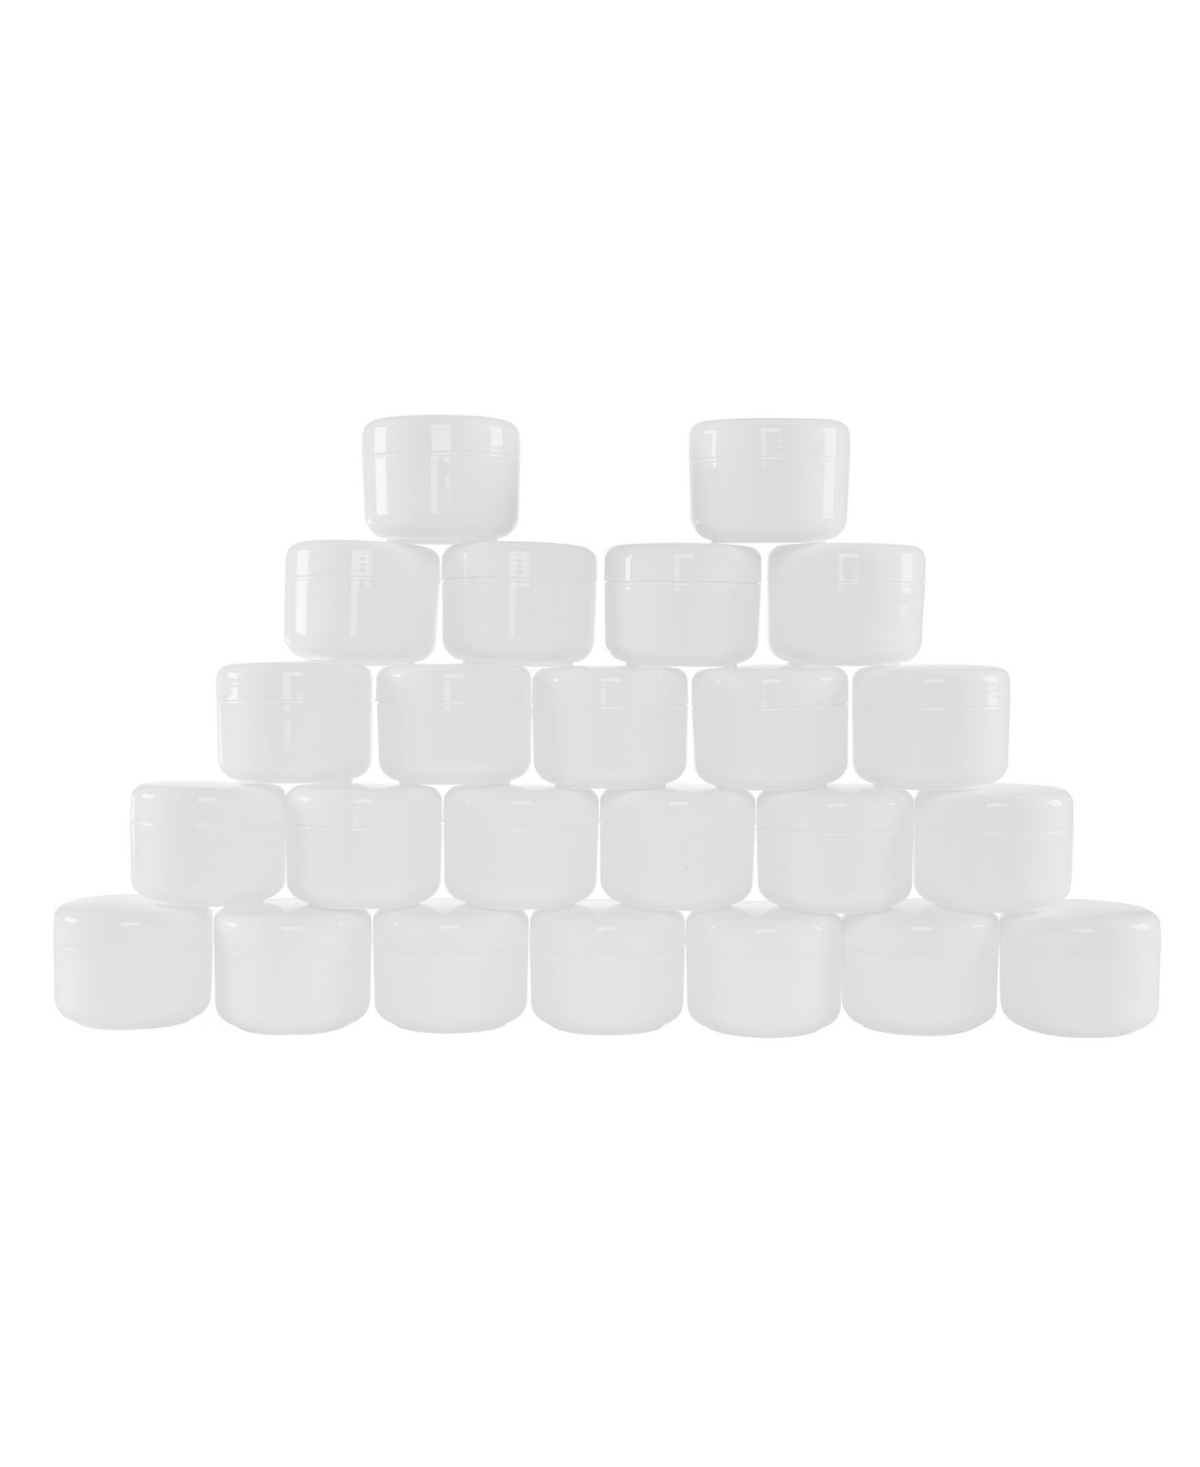 Trademark Global 4 Ounce Plastic Jar Containers, 24 Pack of Storage Jars Inner and Outer Lid by Stalwart